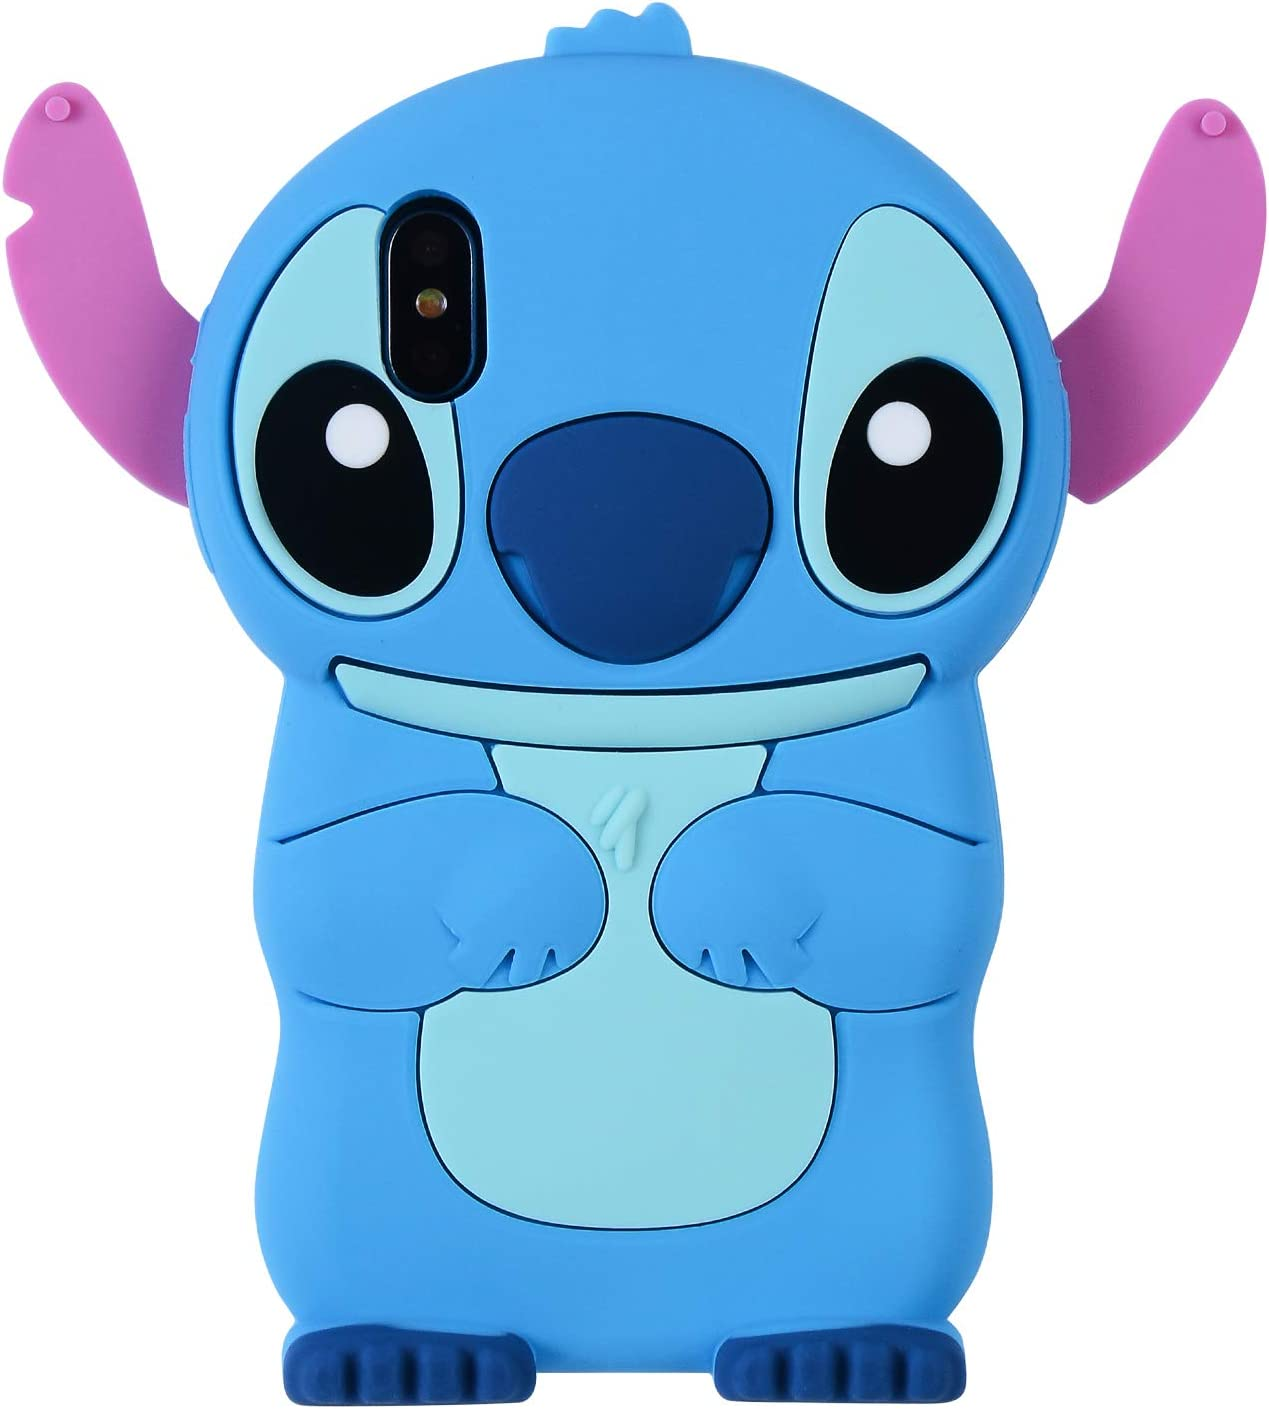 Blue Stch Case for iPhone XR 6.1